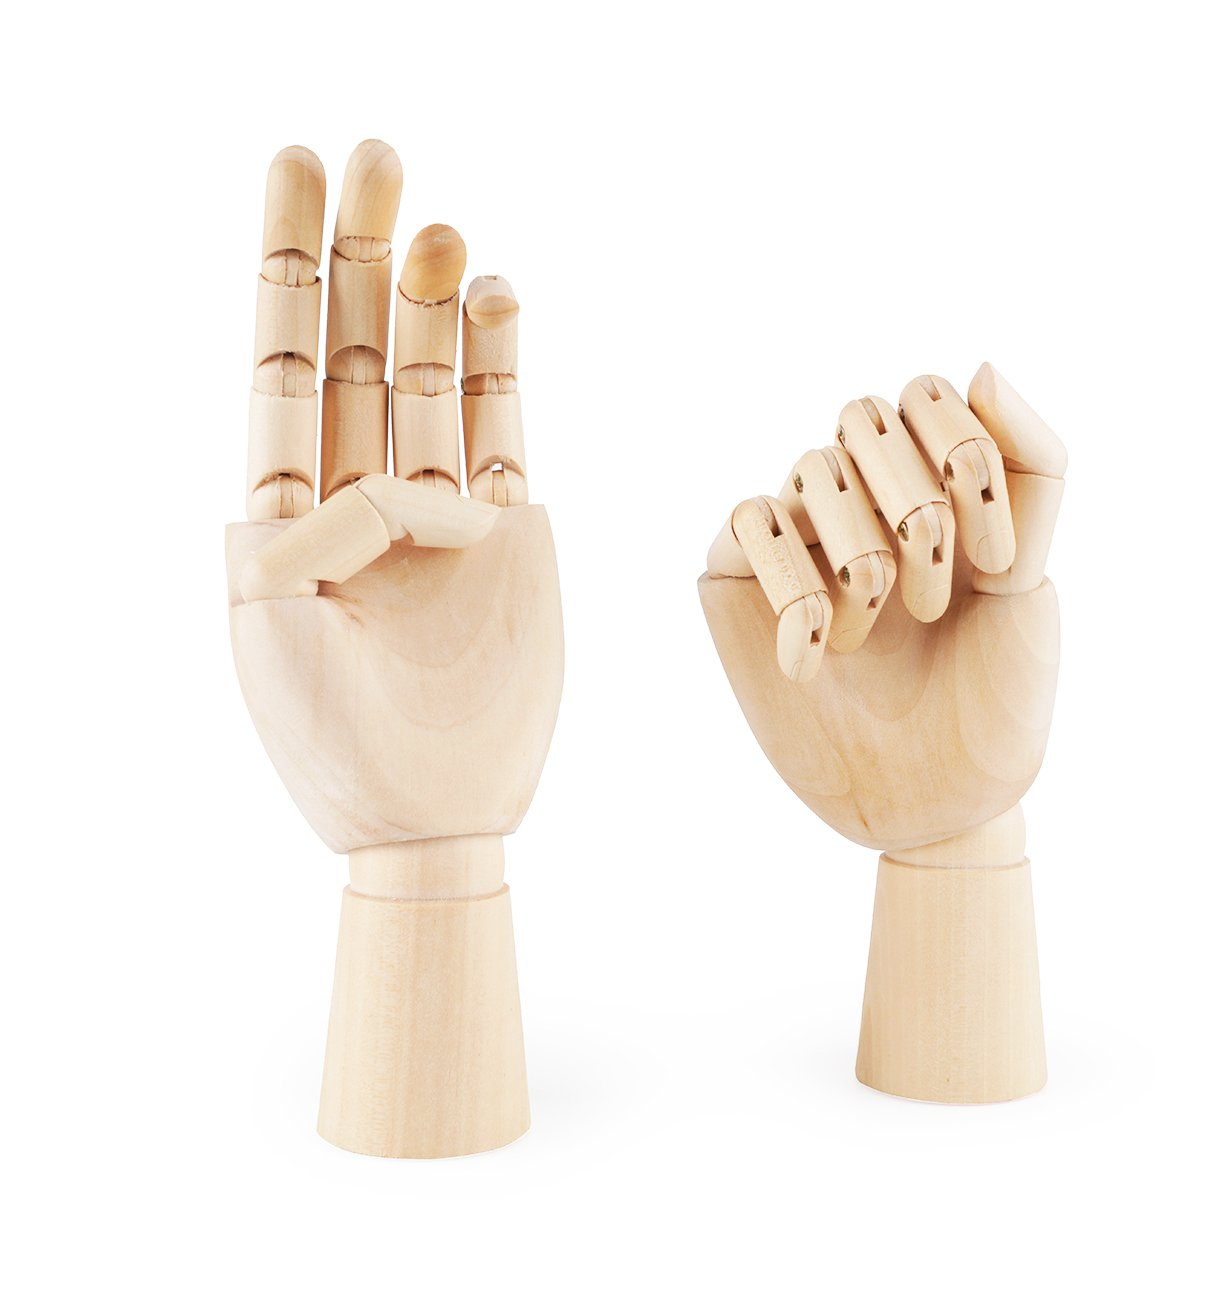 Art Mannequin Hand,Fashionclubs 10'' Wooden Sectioned Opposable Articulated Left/Right Hand Figure Manikin Hand Model for Drawing, Sketching, Painting(Left+Right Hand)